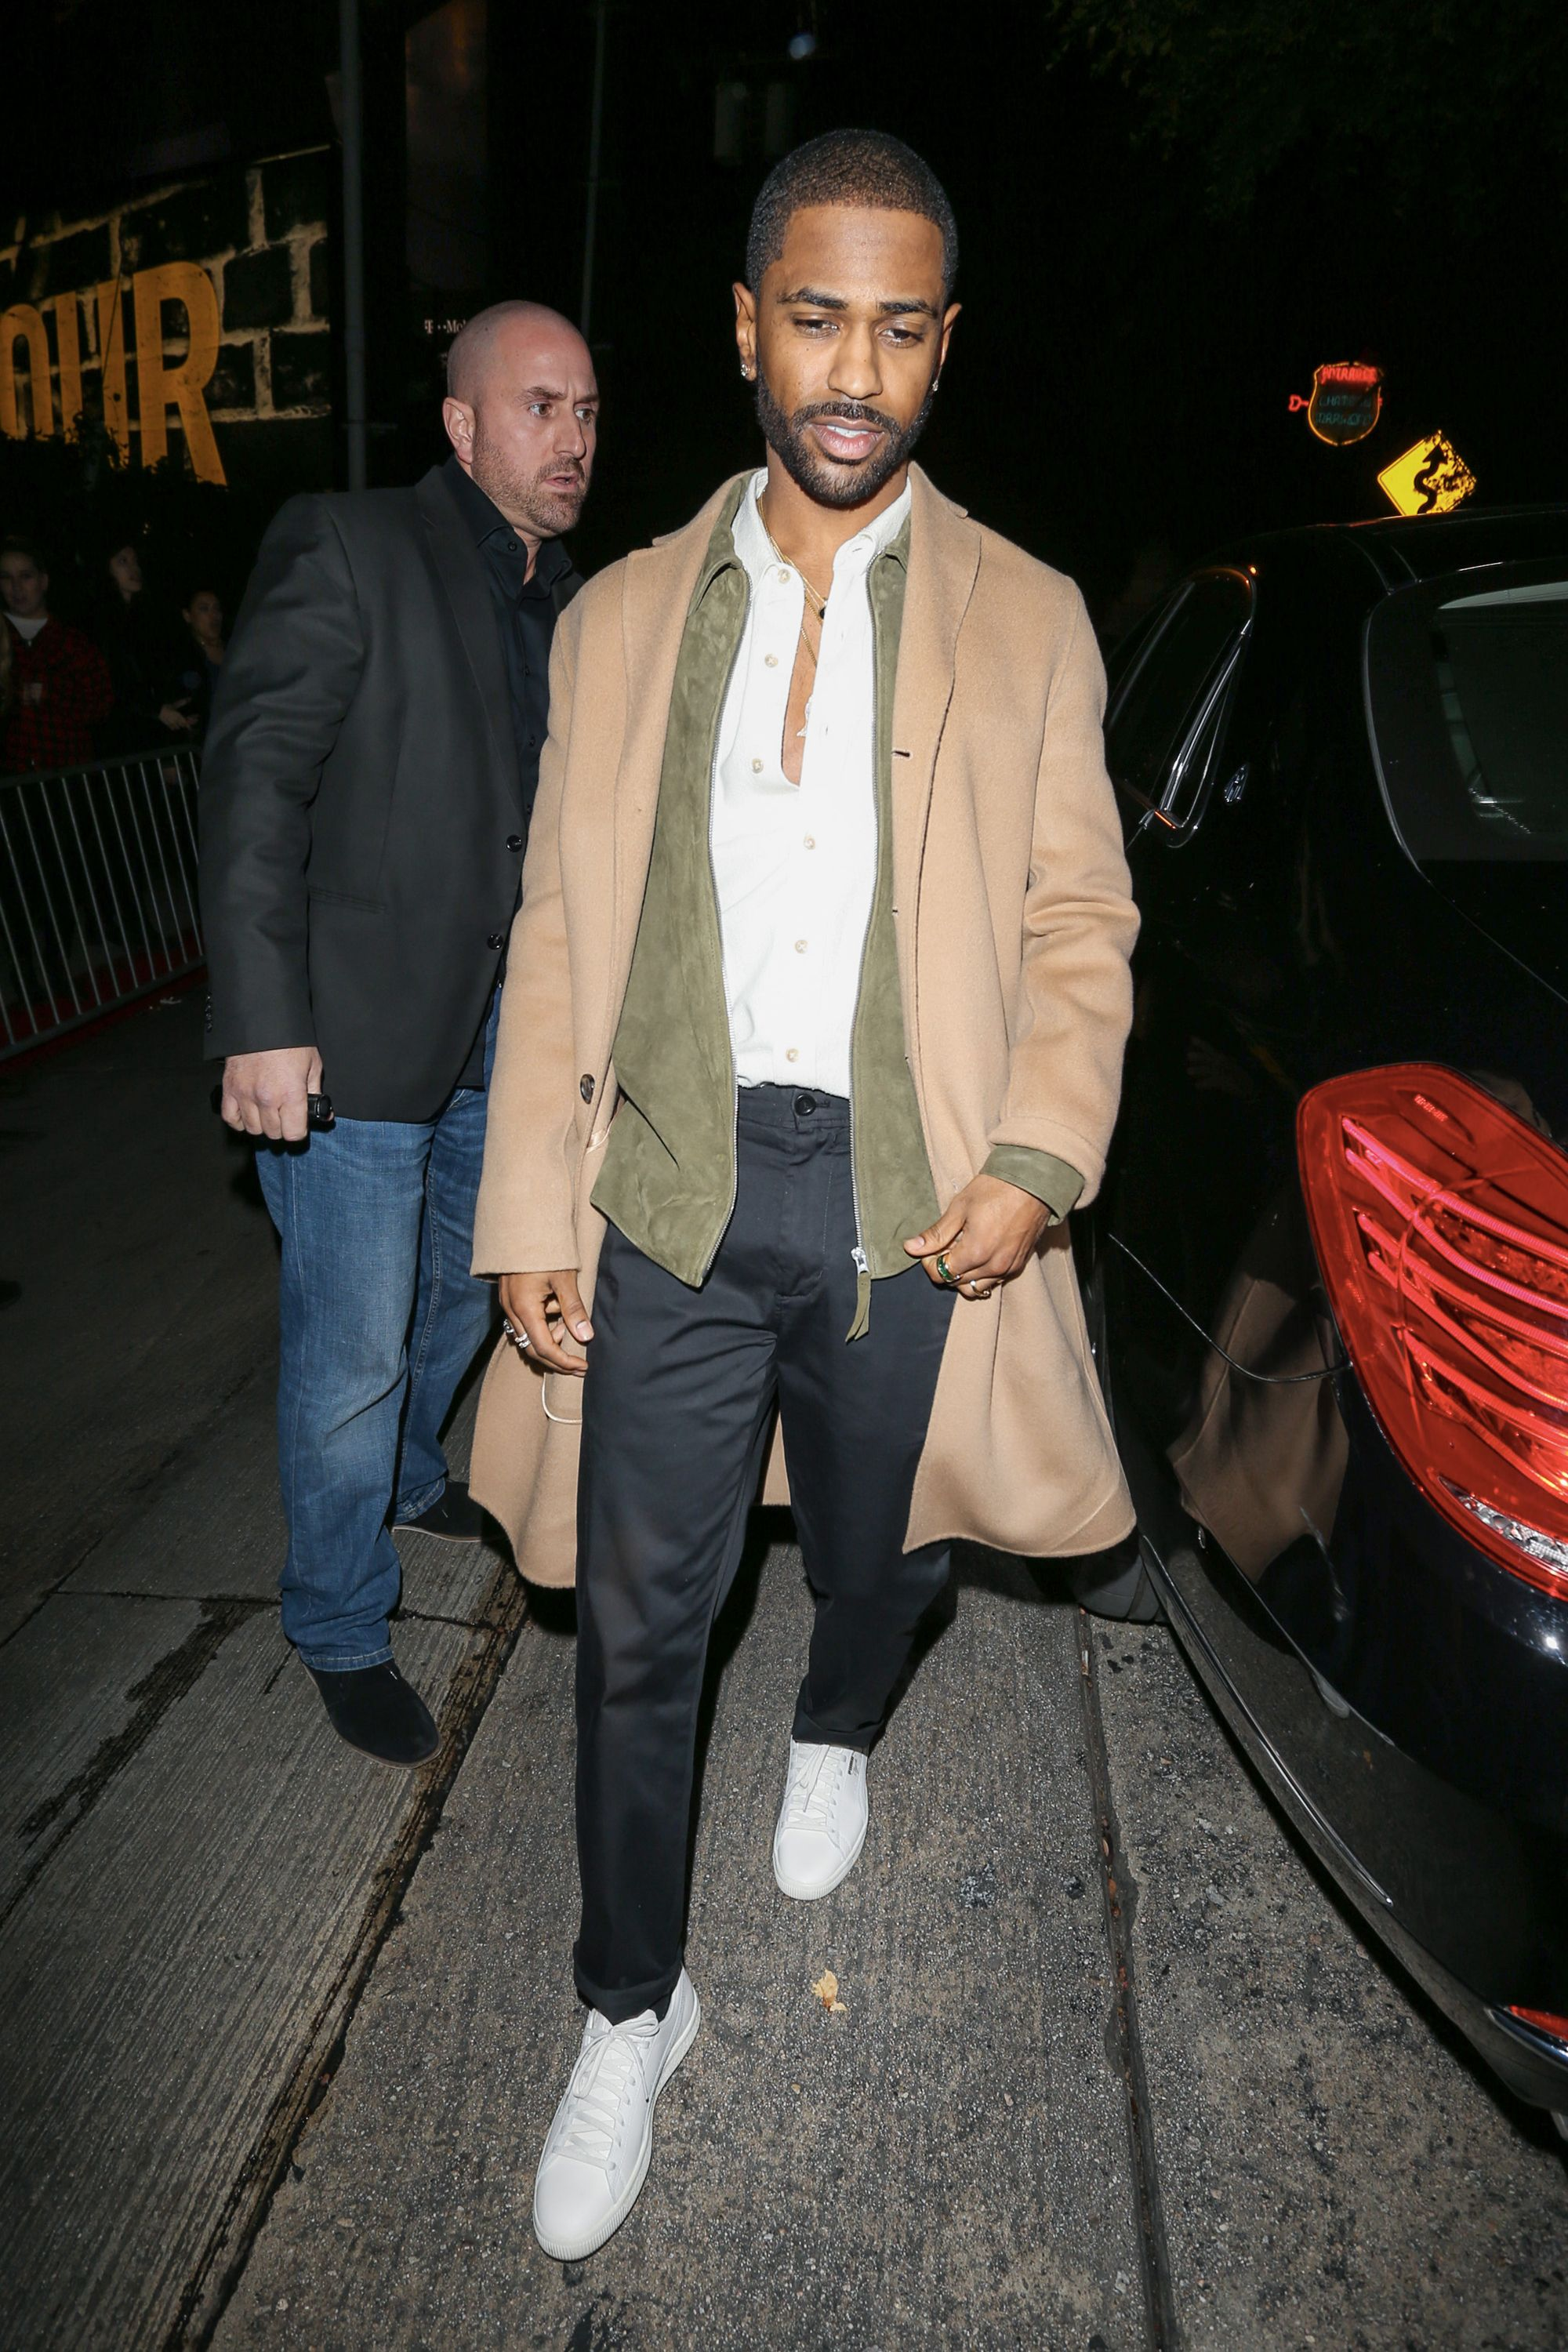 Discussion on this topic: 8 Of The Best Dressed Men At , 8-of-the-best-dressed-men-at/